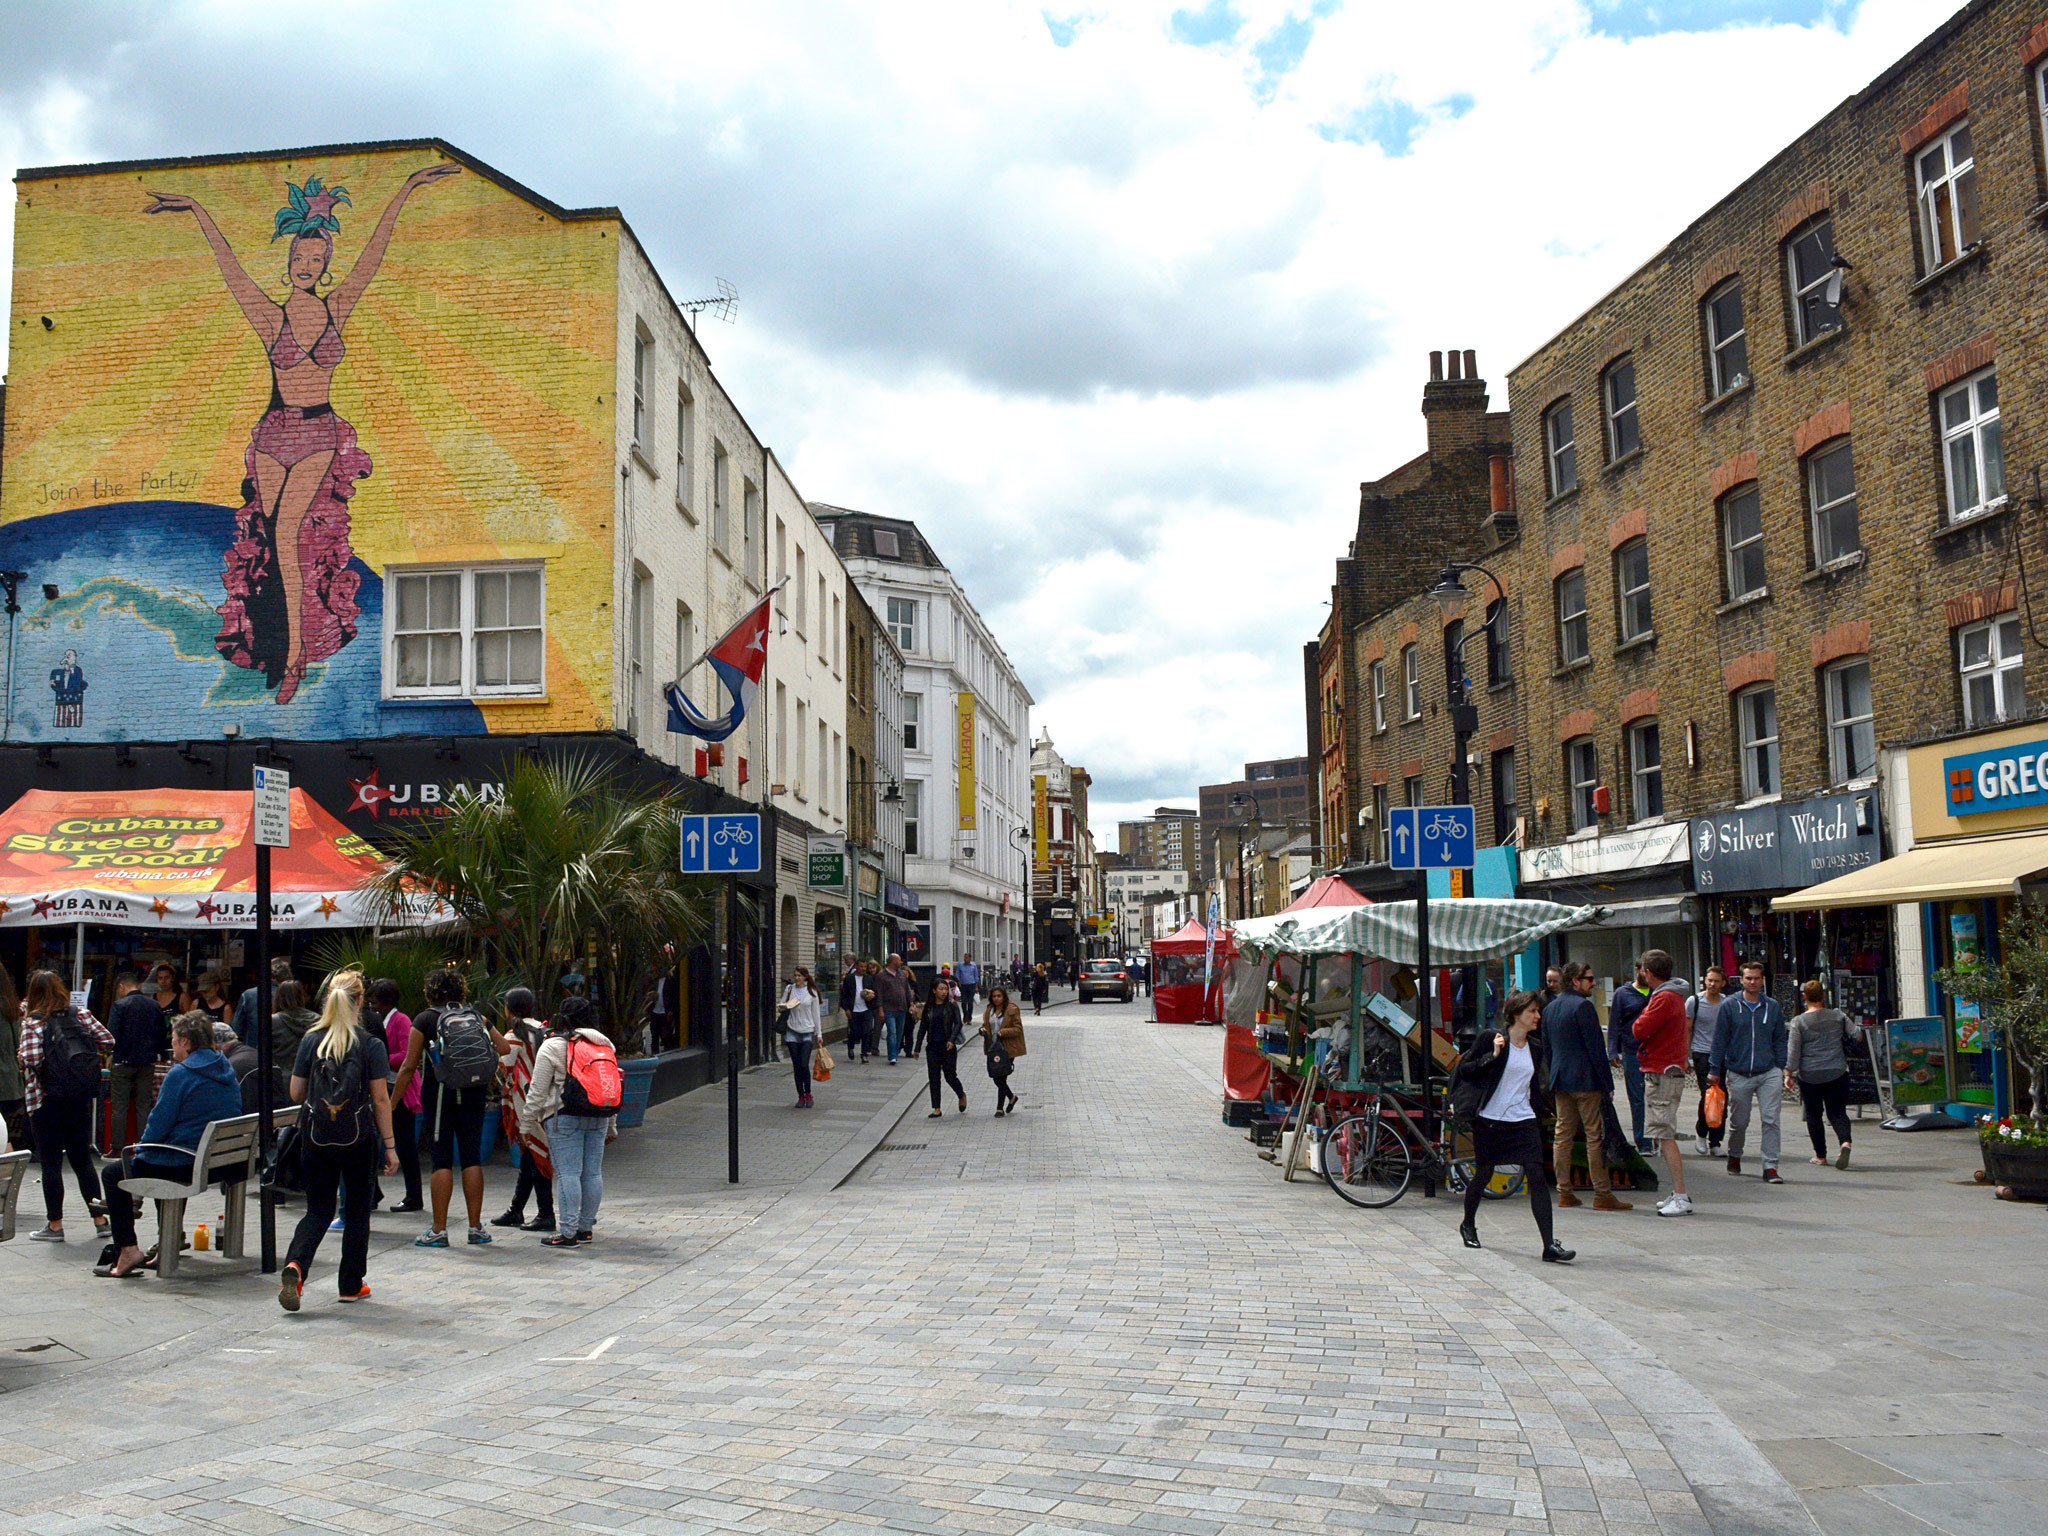 18 reasons to go to Lower Marsh, SE1